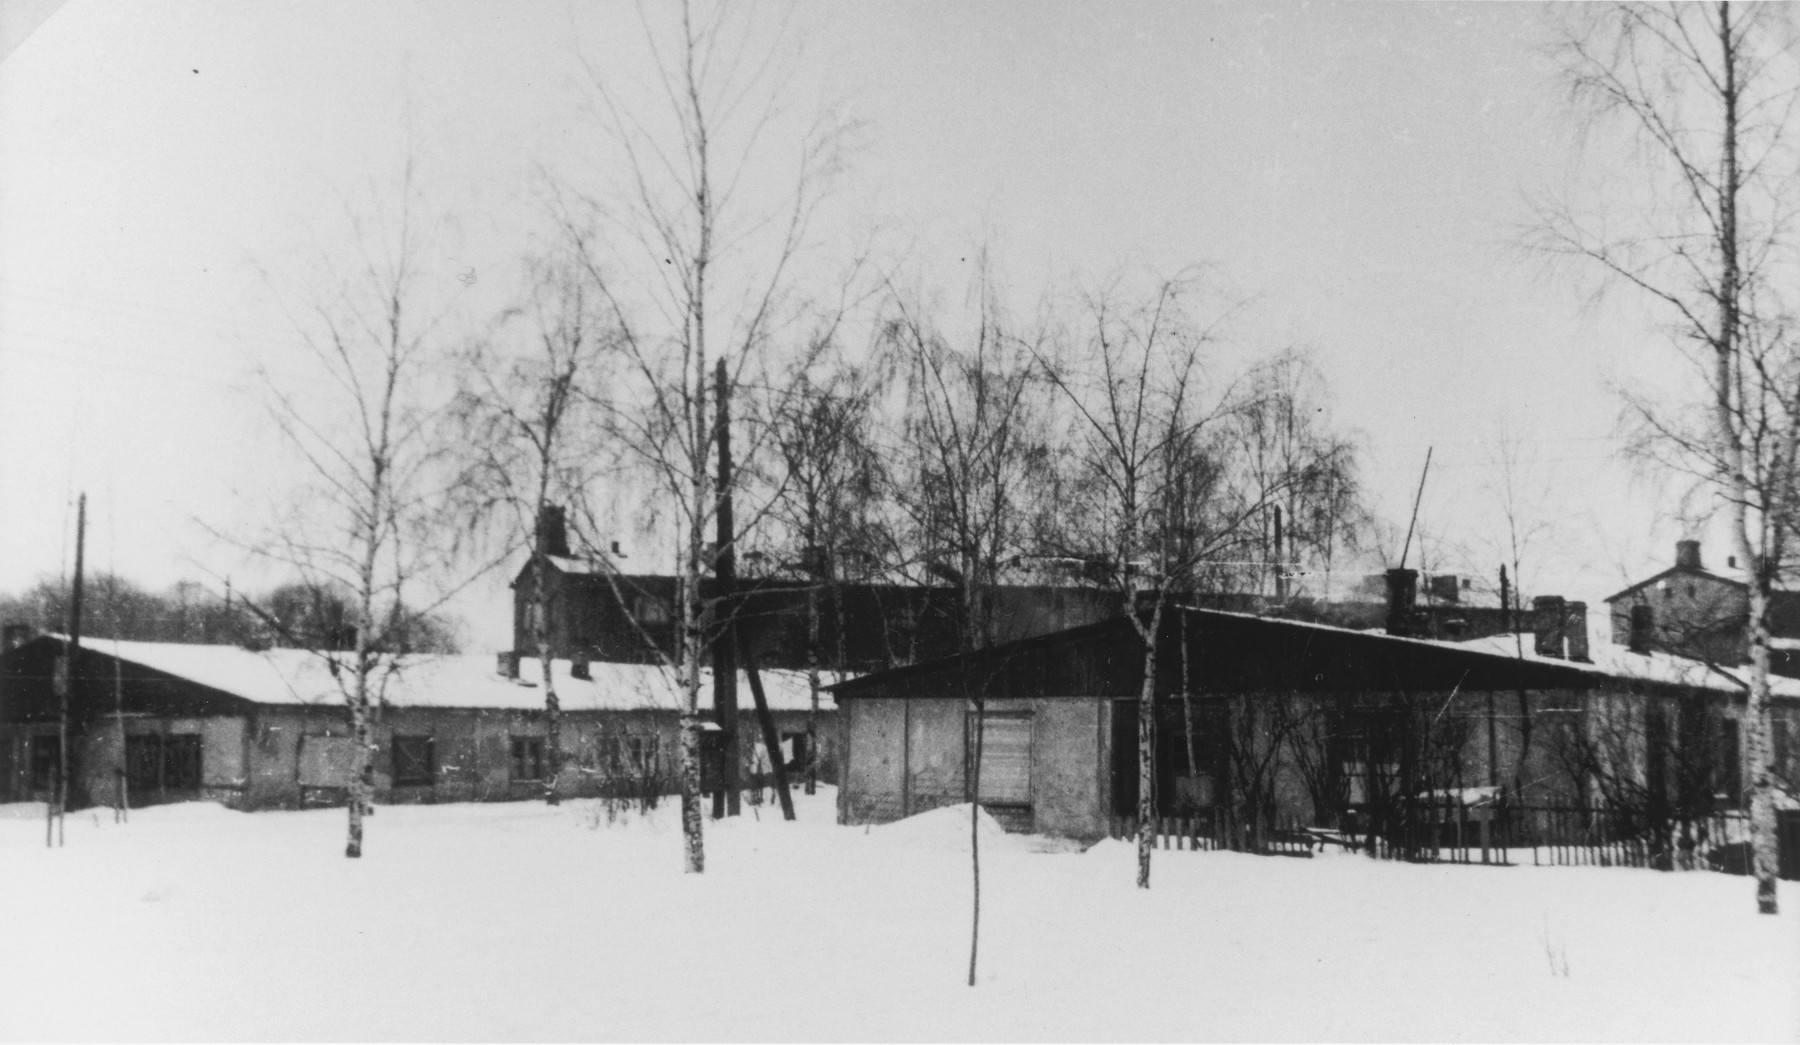 View of the former Kaiserwald concentration camp.